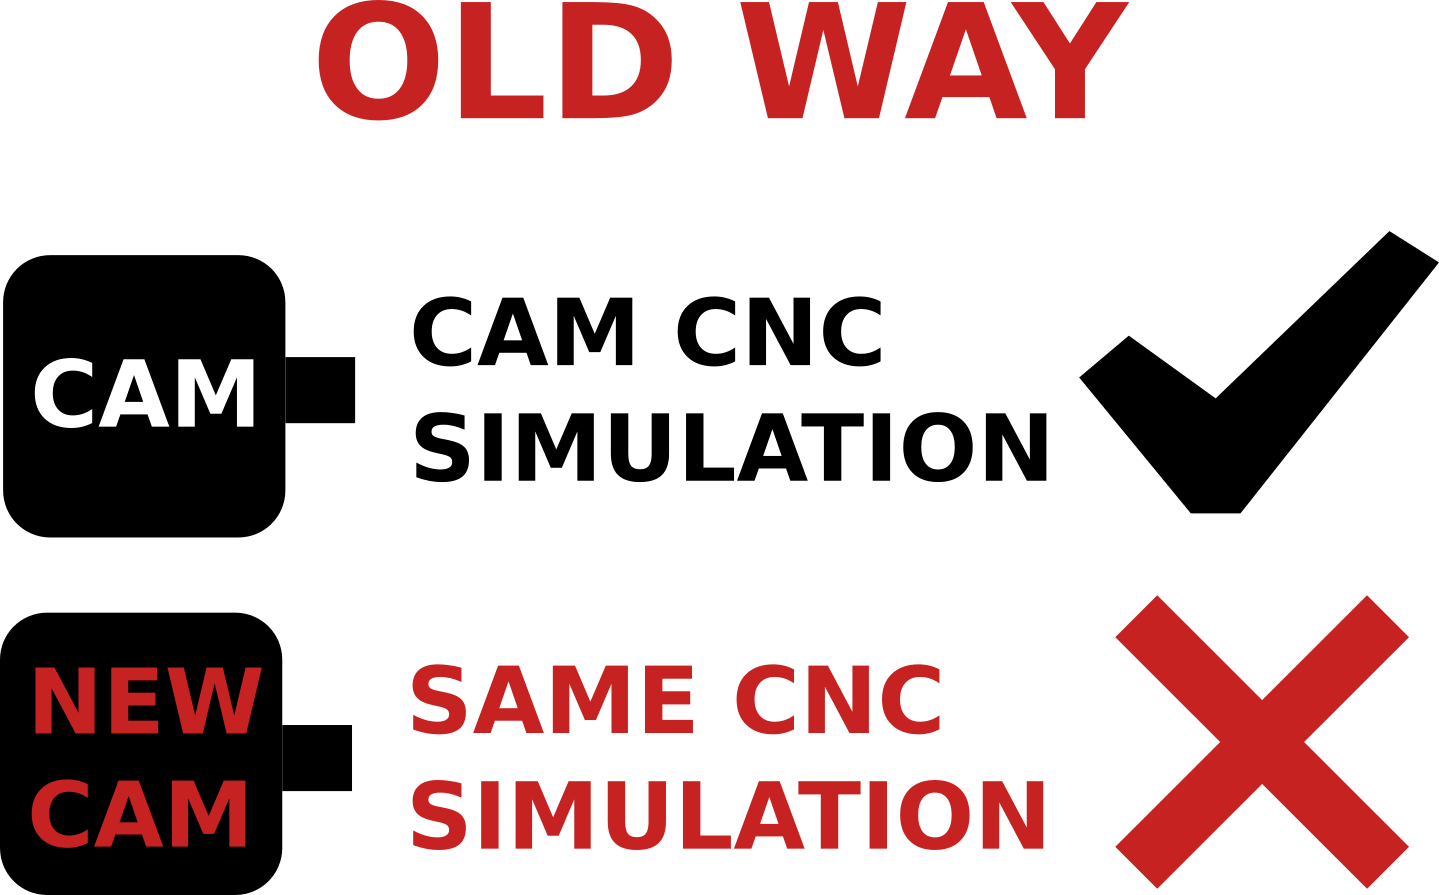 MYTHS AND TRUTHS ABOUT CNC SIMULATION